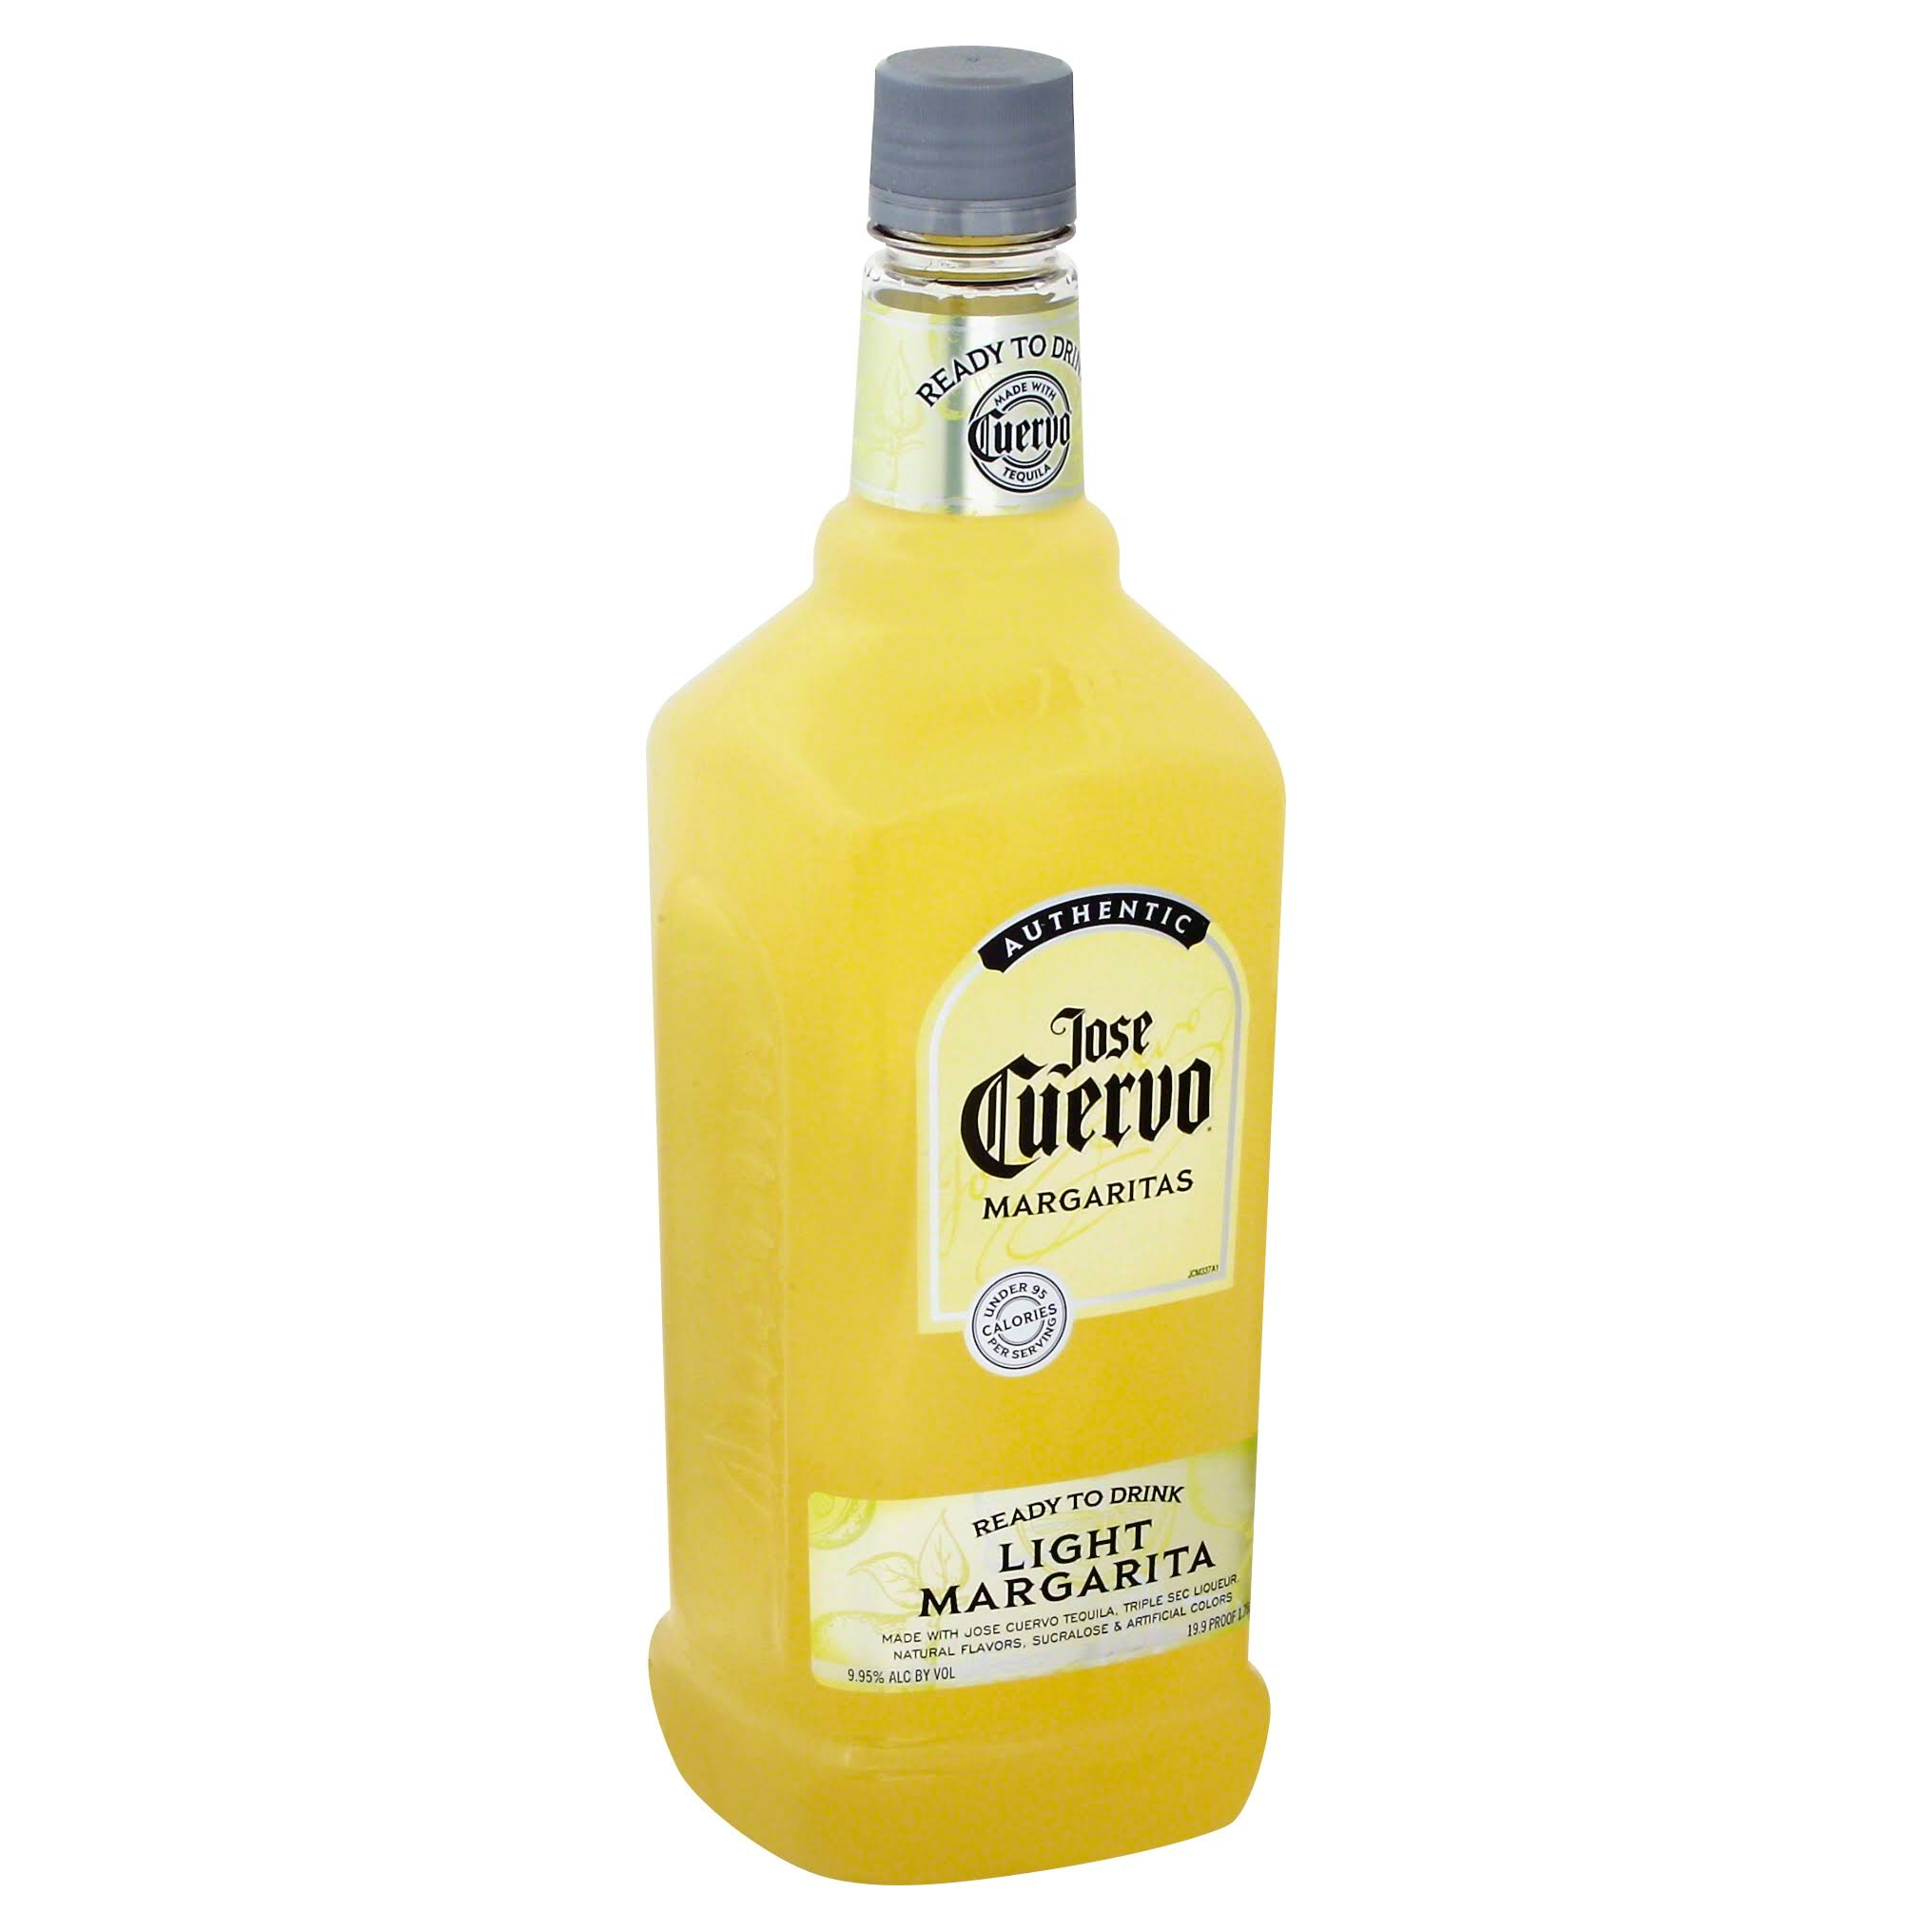 Jose Cuervo Light Margarita